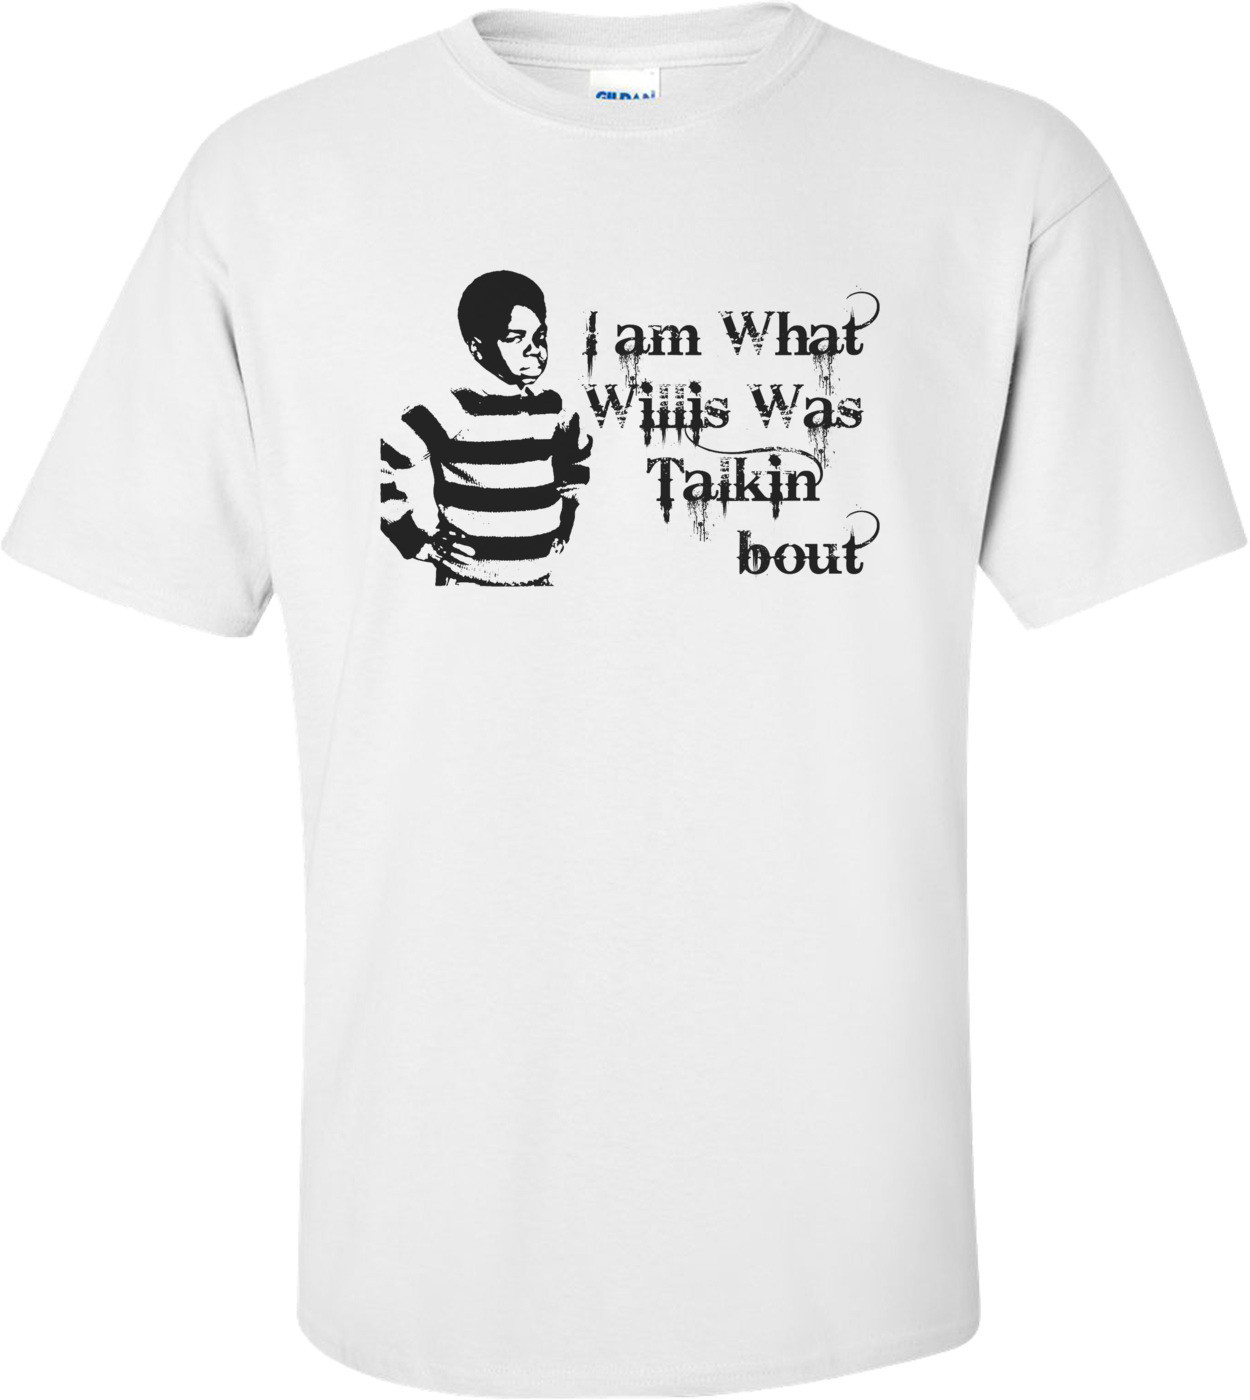 I Am What Willis Was Talkin' Bout Funny Shirt